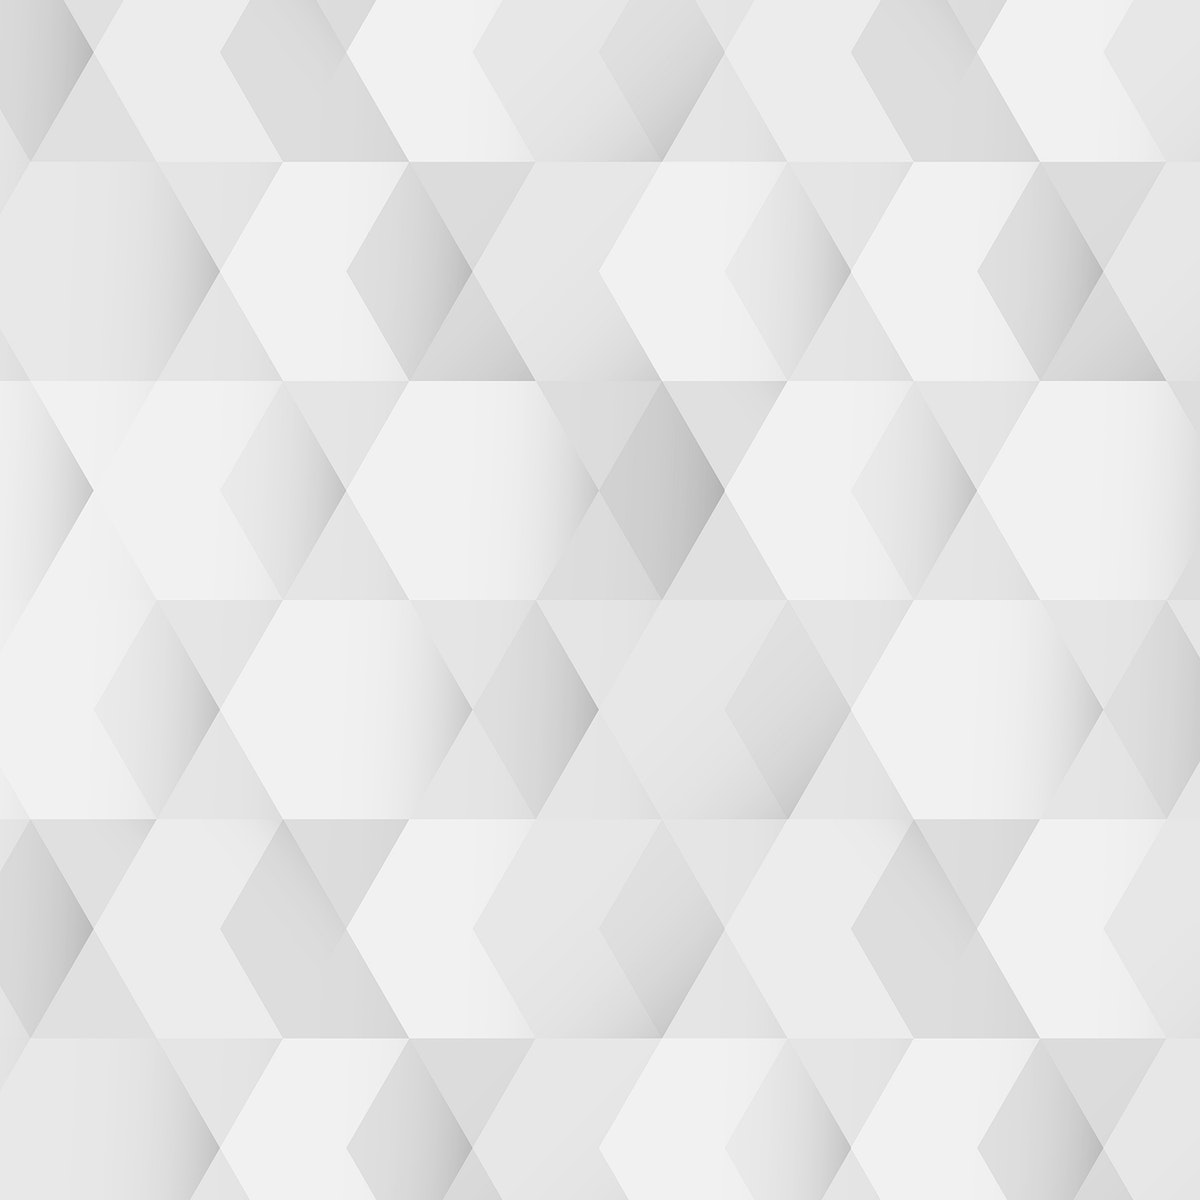 White and gray geometric pattern background vector